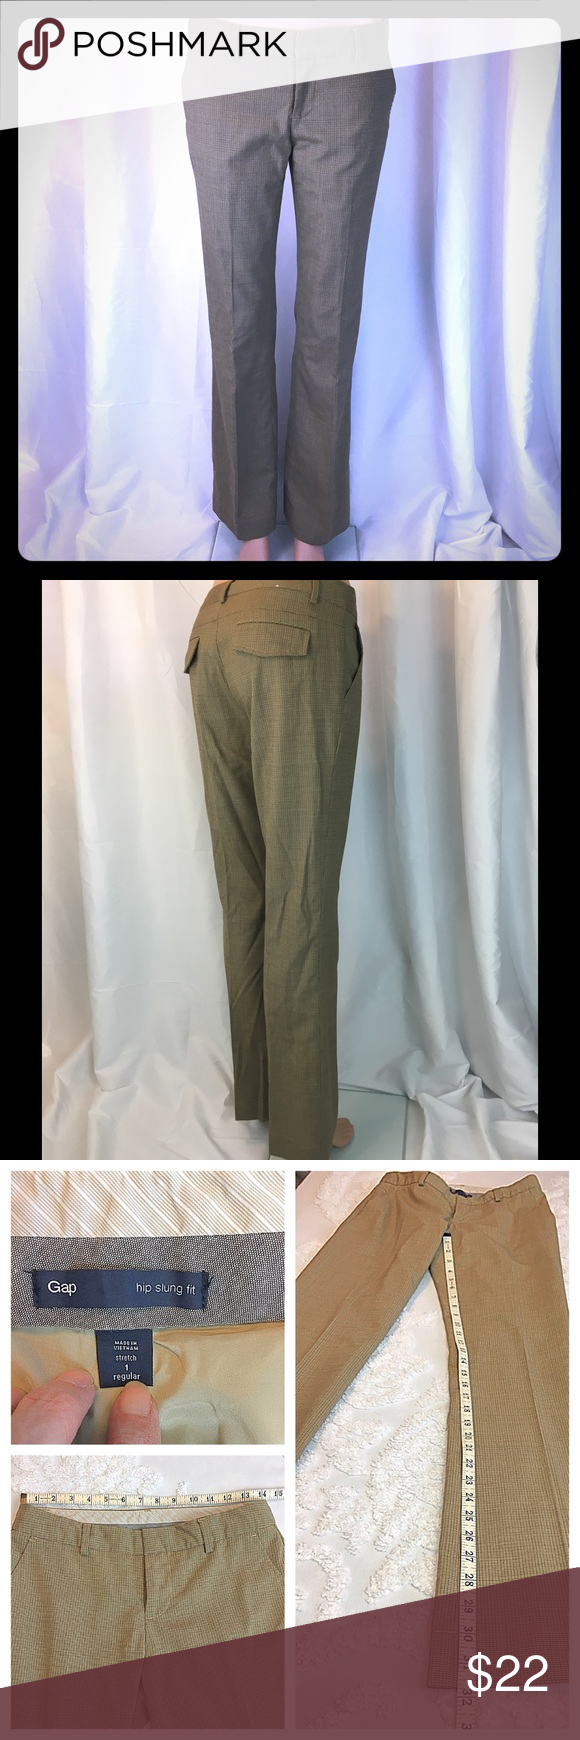 Pants Carmel rust houndstooth Gap Popular hip slung cut with slash side pockets. Excellent used condition. Great for work, small houndstooth print goes with lots of different style tops and colors. GAP Pants